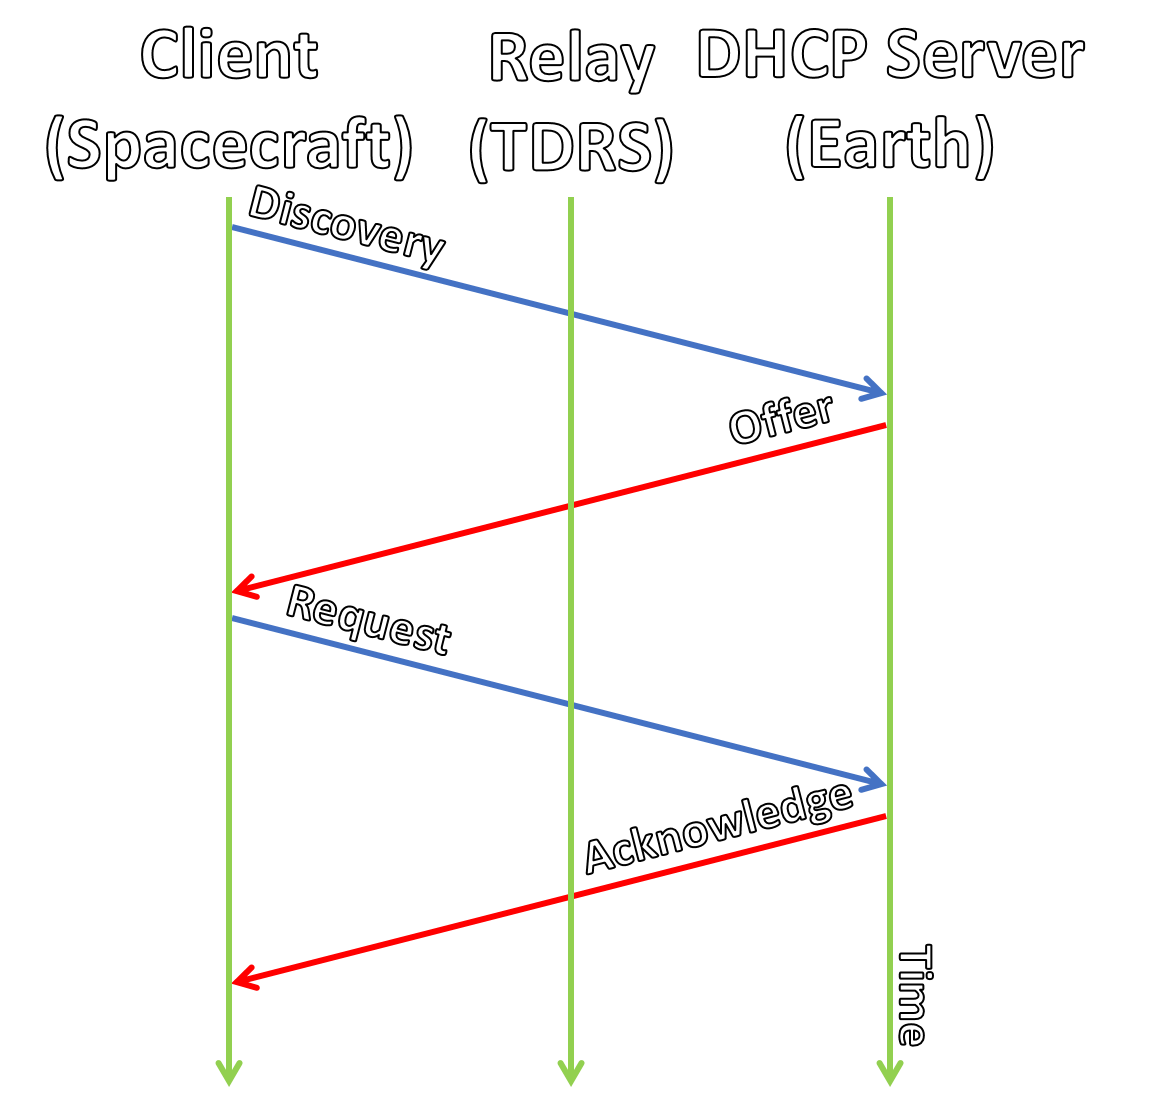 Traditional DHCP